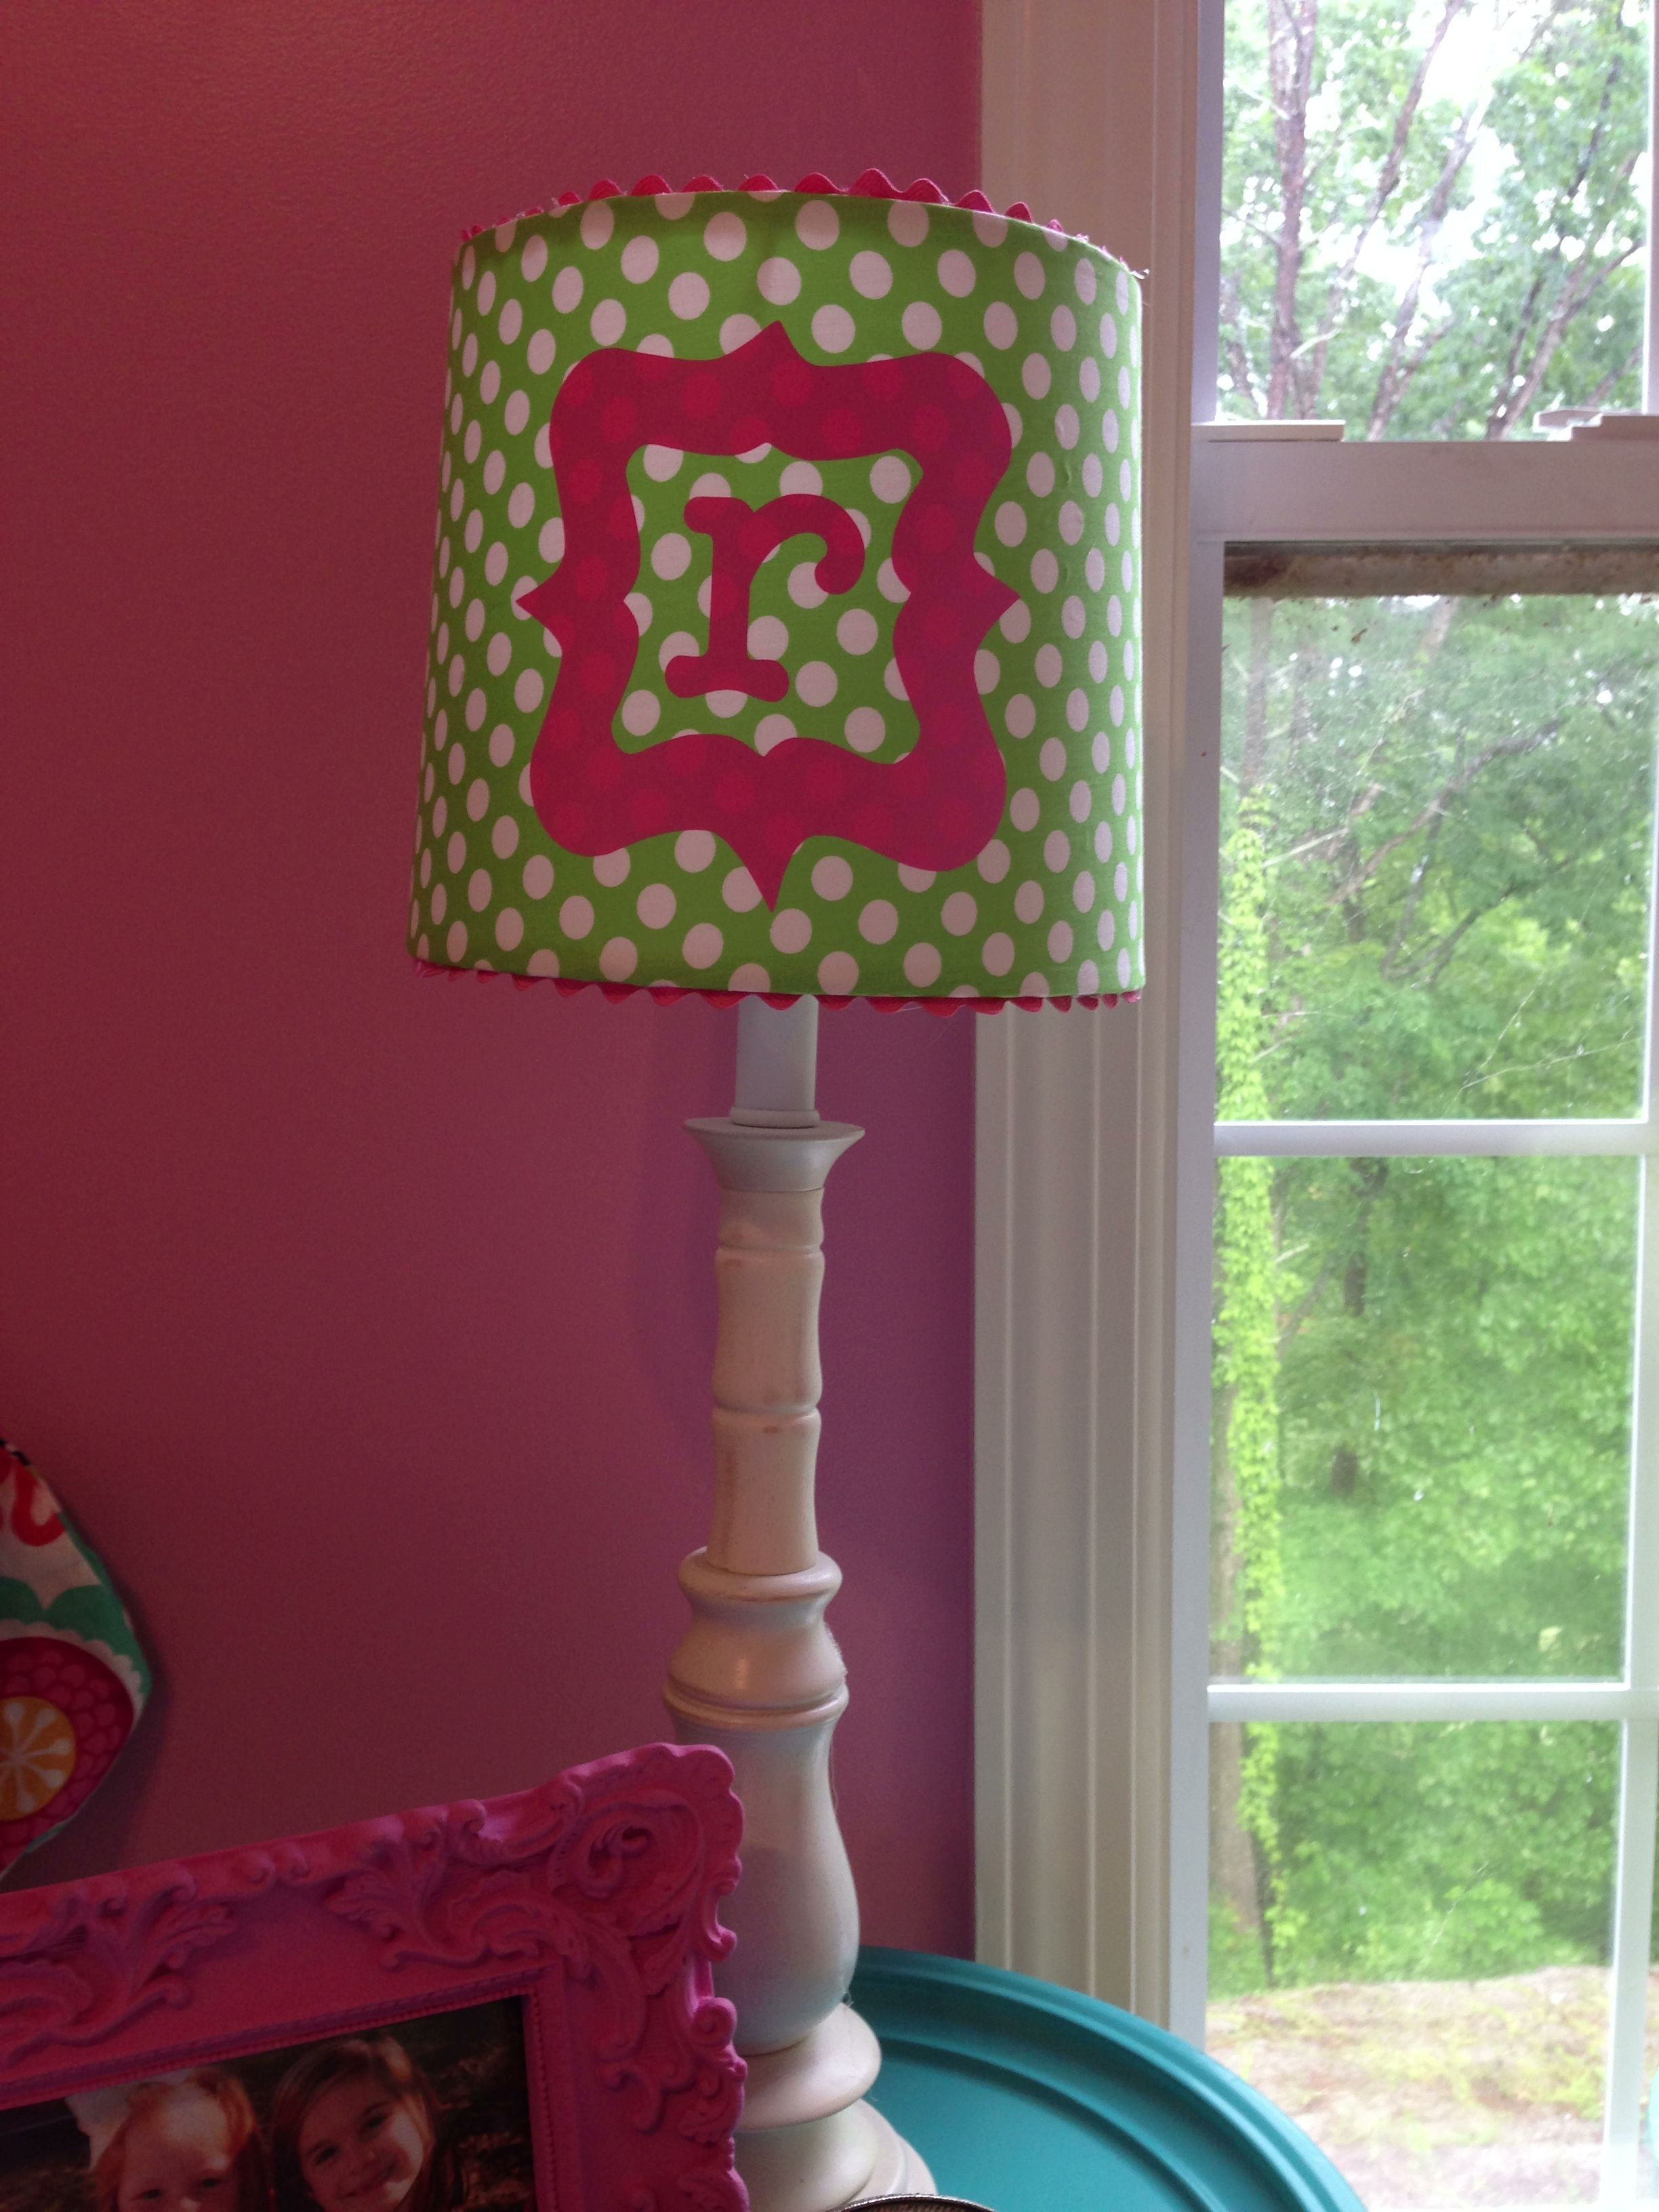 Hobby Lobby Lamp Shades Impressive Self Adhesive Lamp Shade From Hobby Lobby With A Vinyl Design From 2018